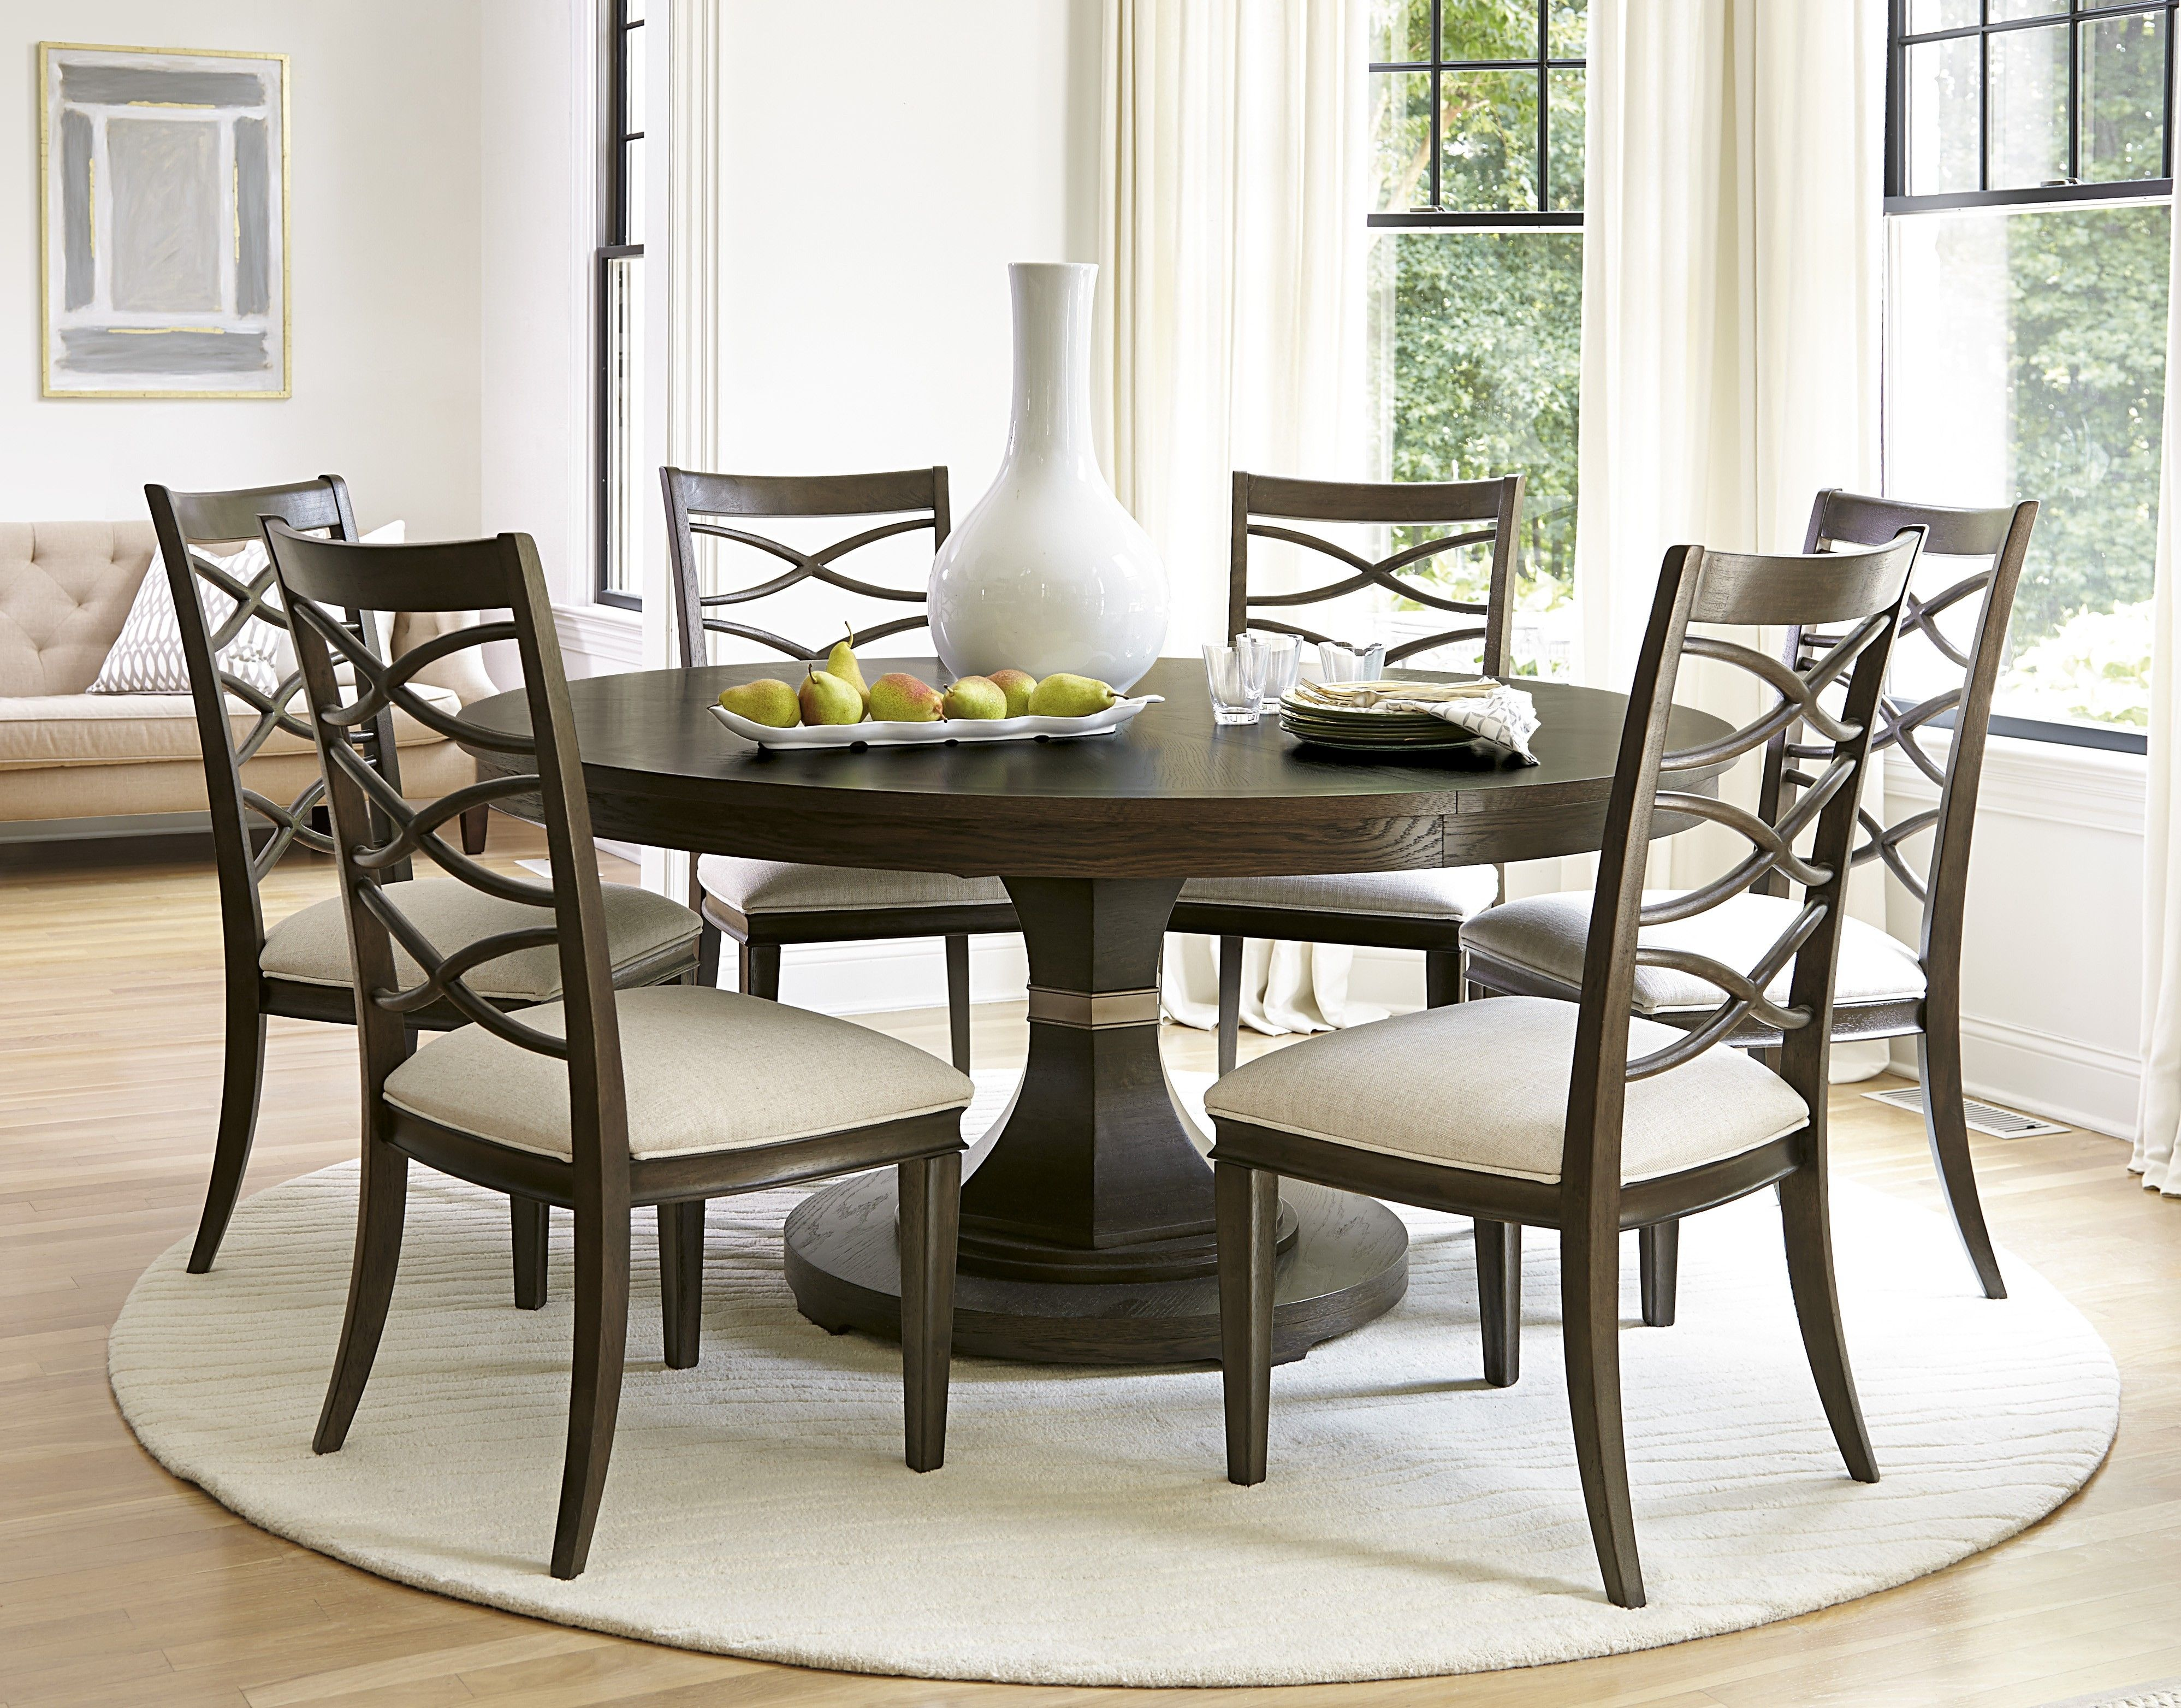 7 pc round dining table set pinterest